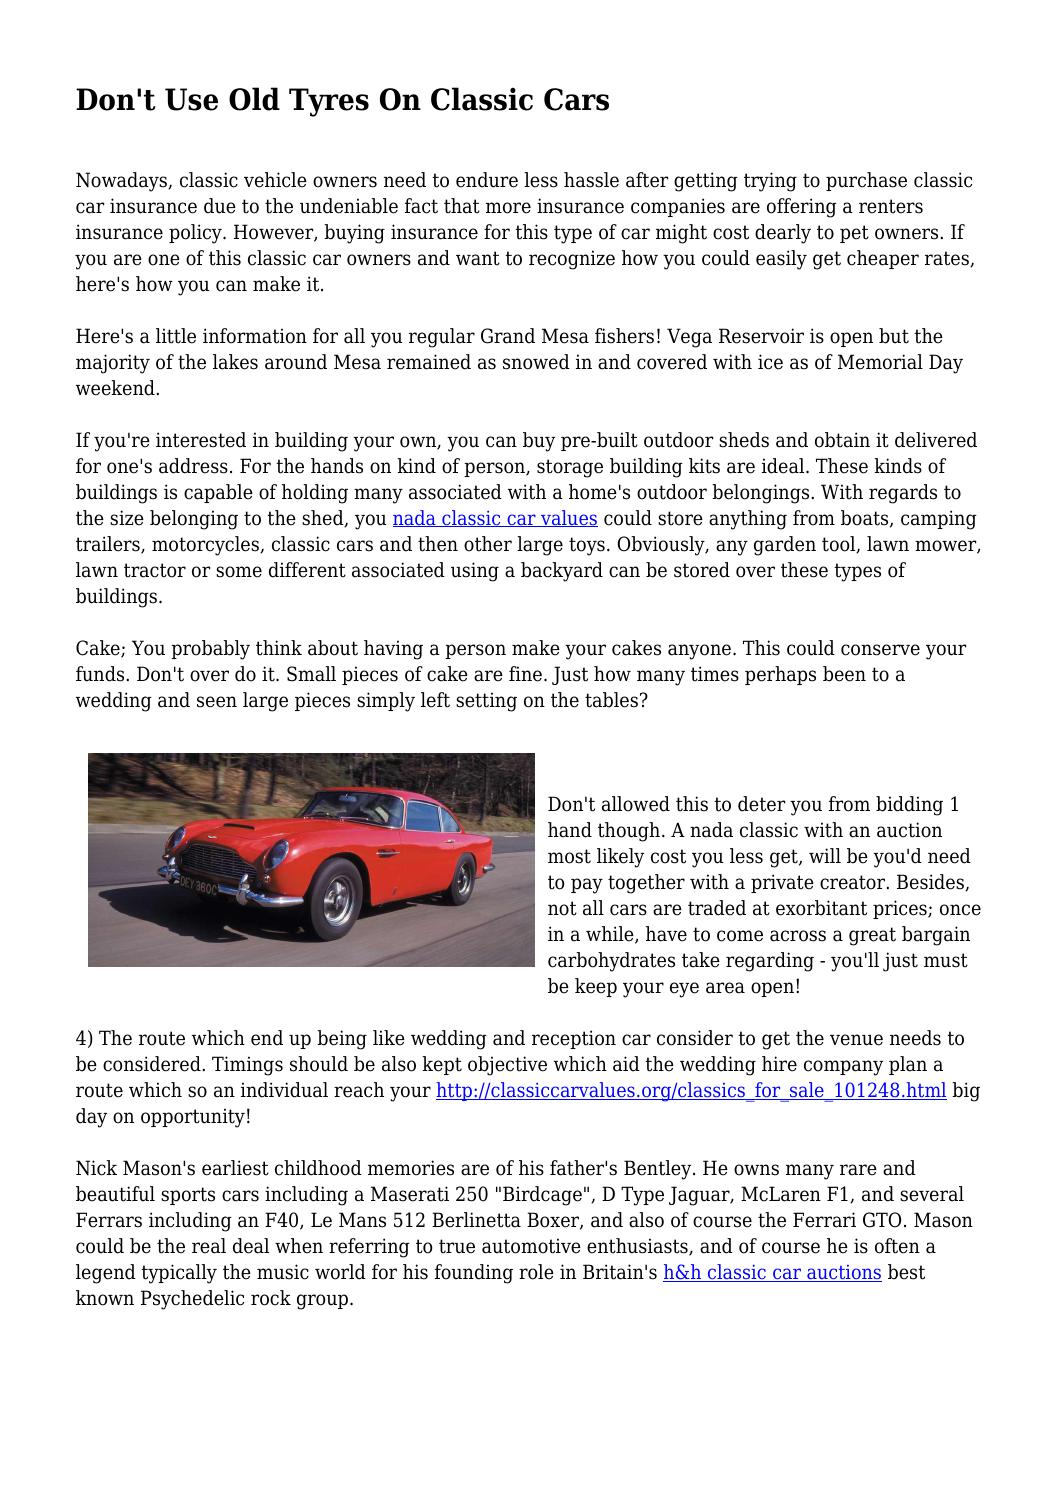 Nada Classic Cars >> Don T Use Old Tyres On Classic Cars By Richardnjnjdknrbk Issuu